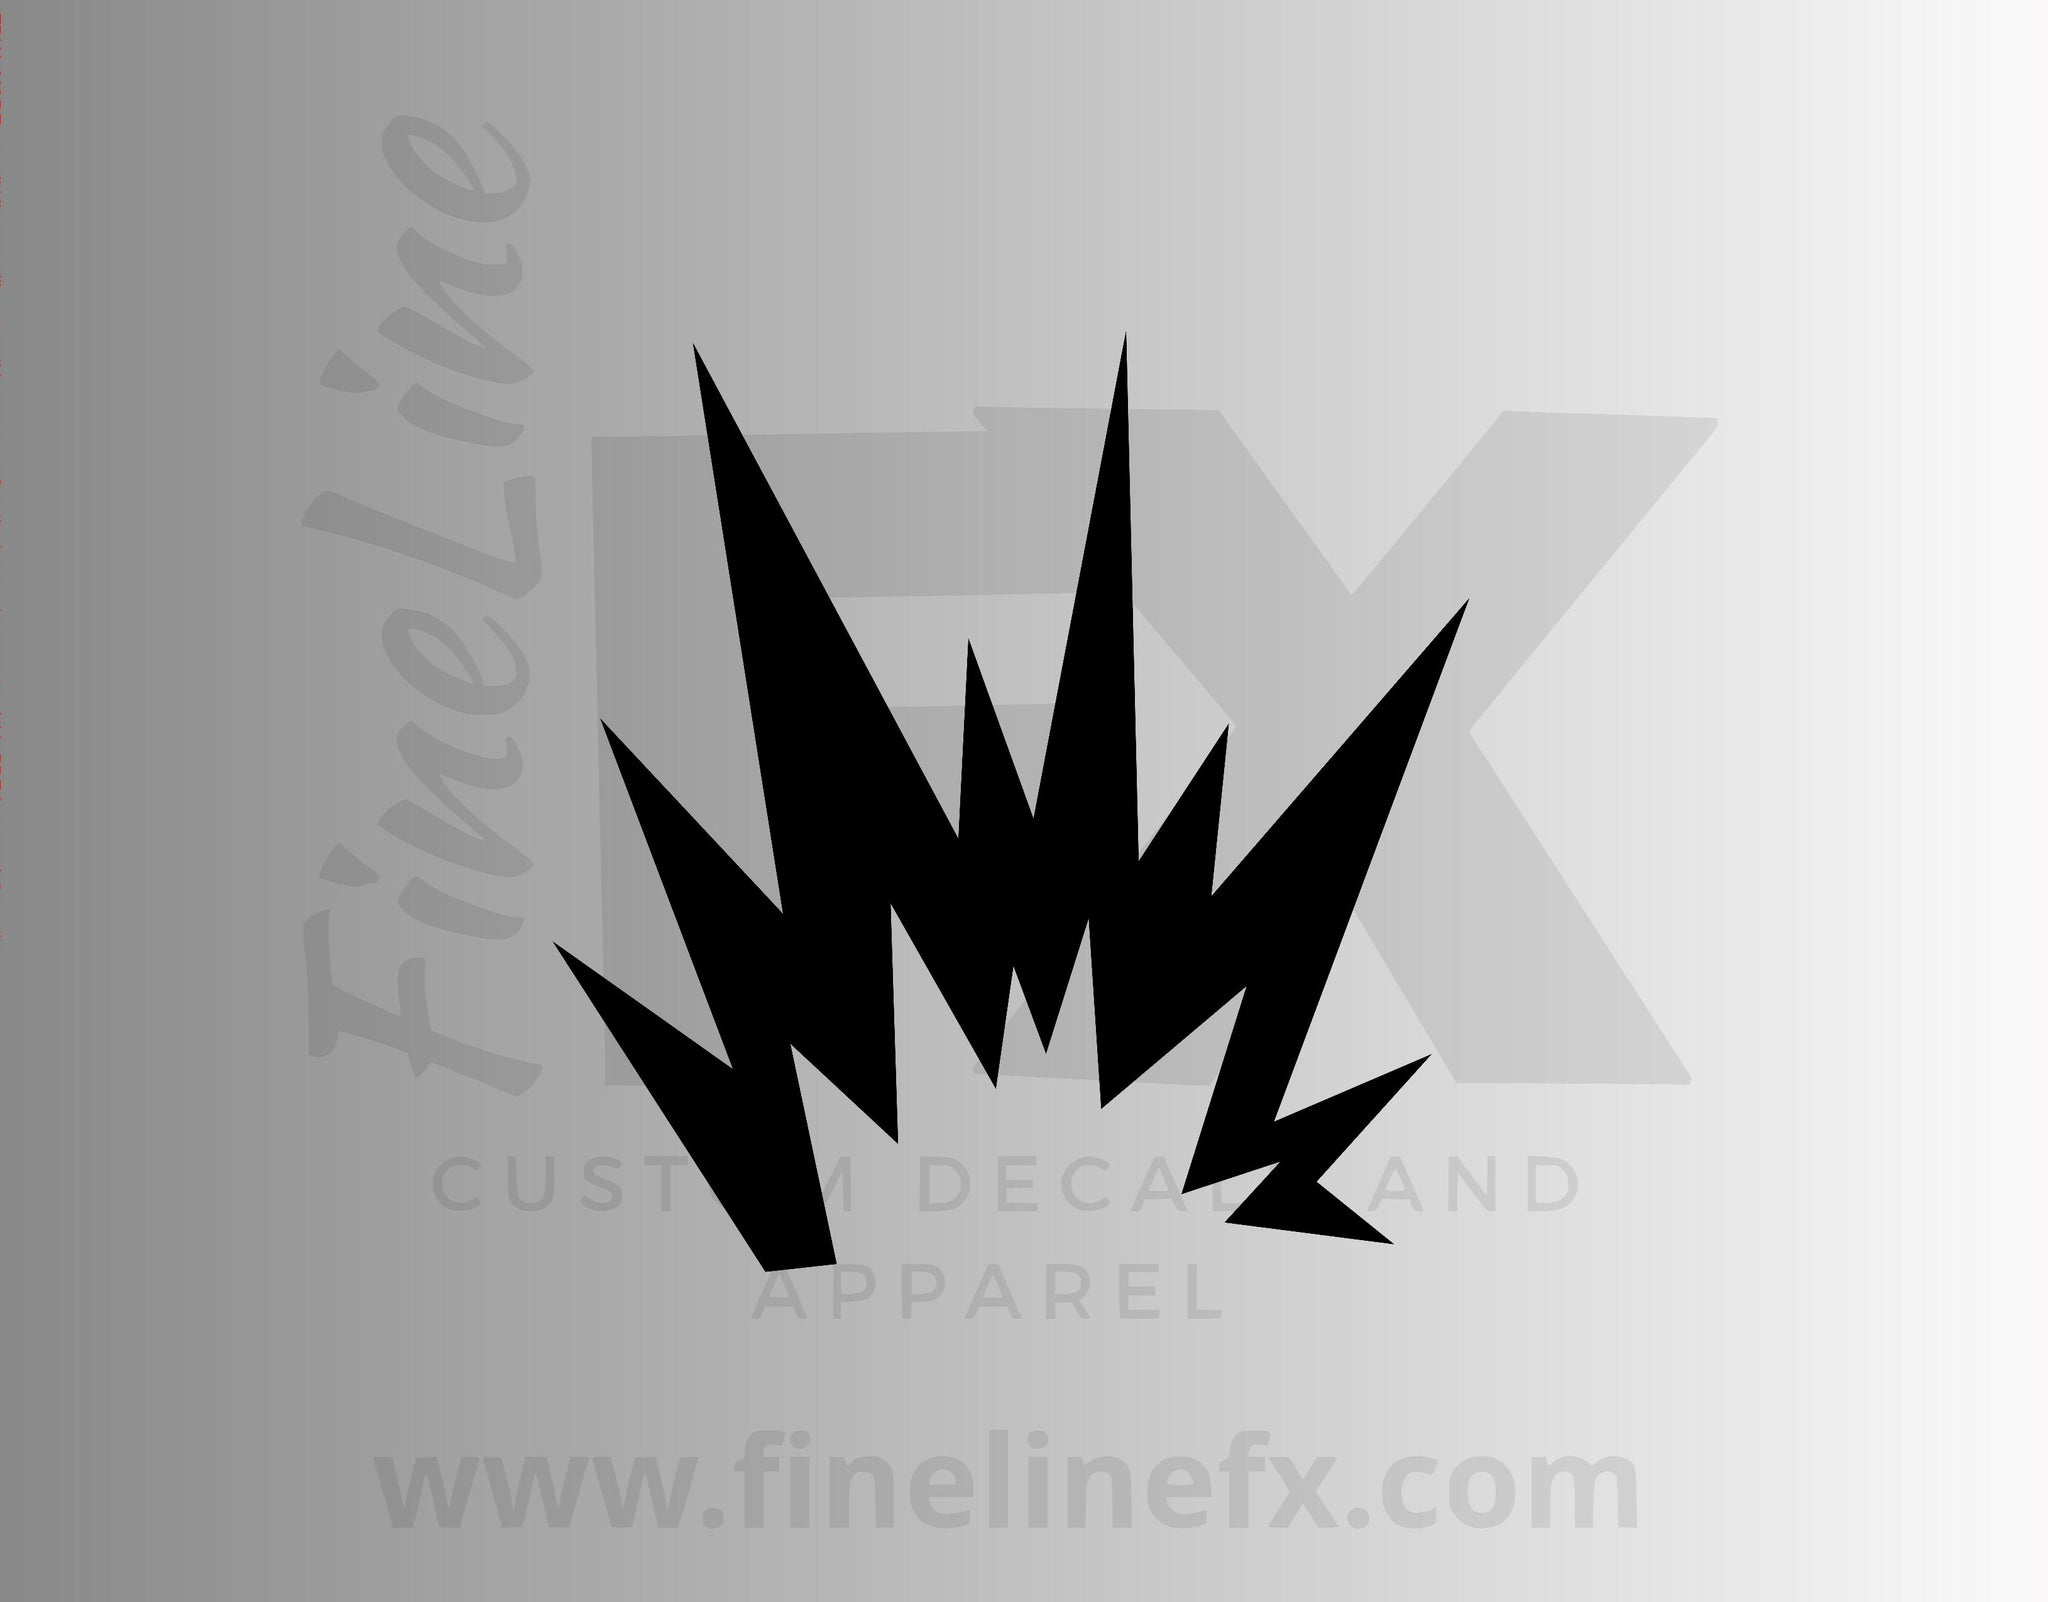 Flames Explosion Hazard Warning Symbol Vinyl Decal Sticker